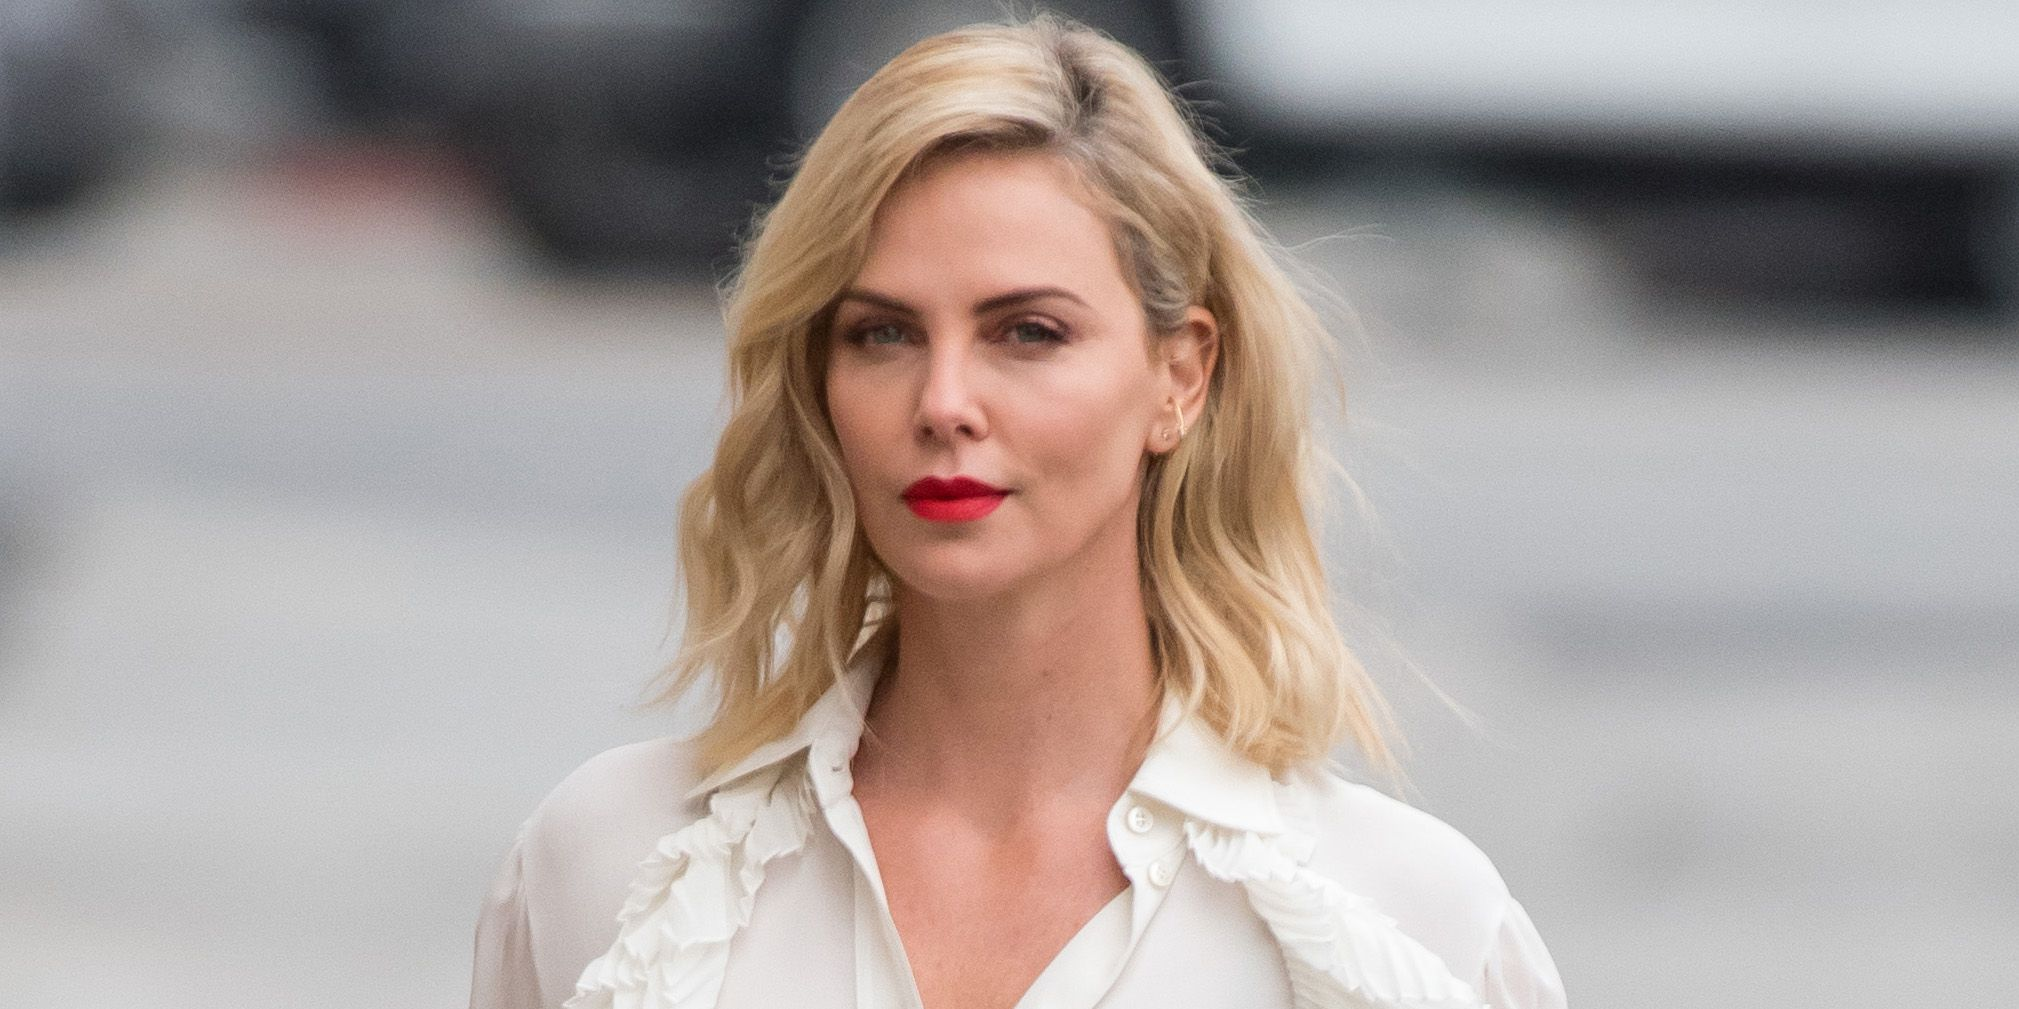 Charlize-Theron-Wiki-Biography-Age-Height-Weight-Profile-Body Measurement